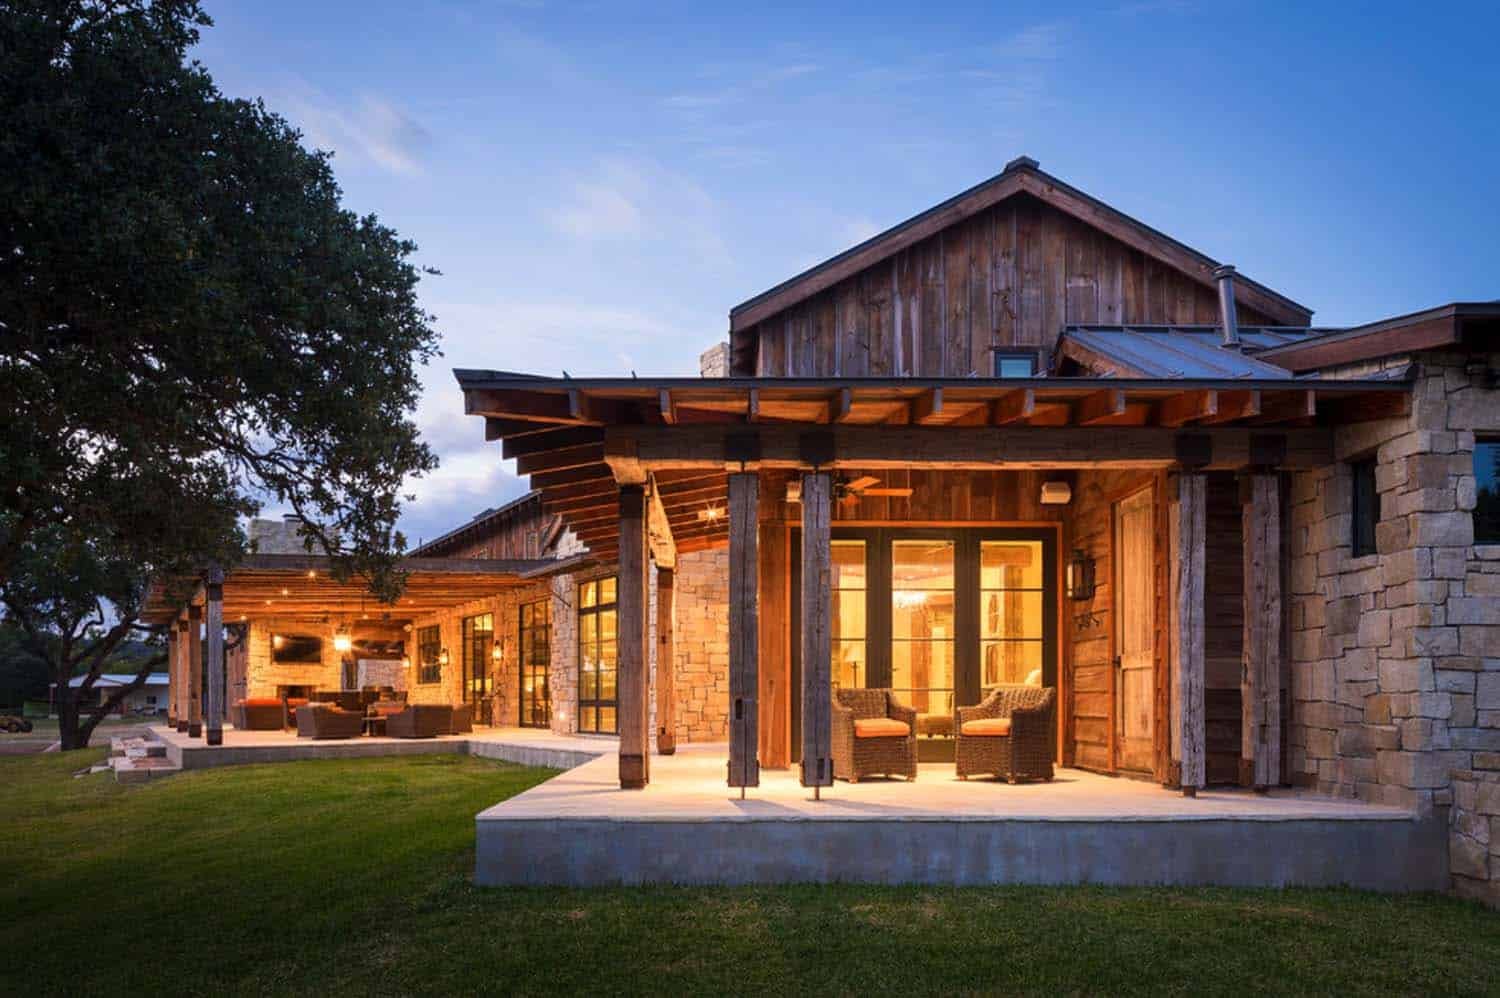 Modern rustic barn style retreat in texas hill country for Custom rustic homes